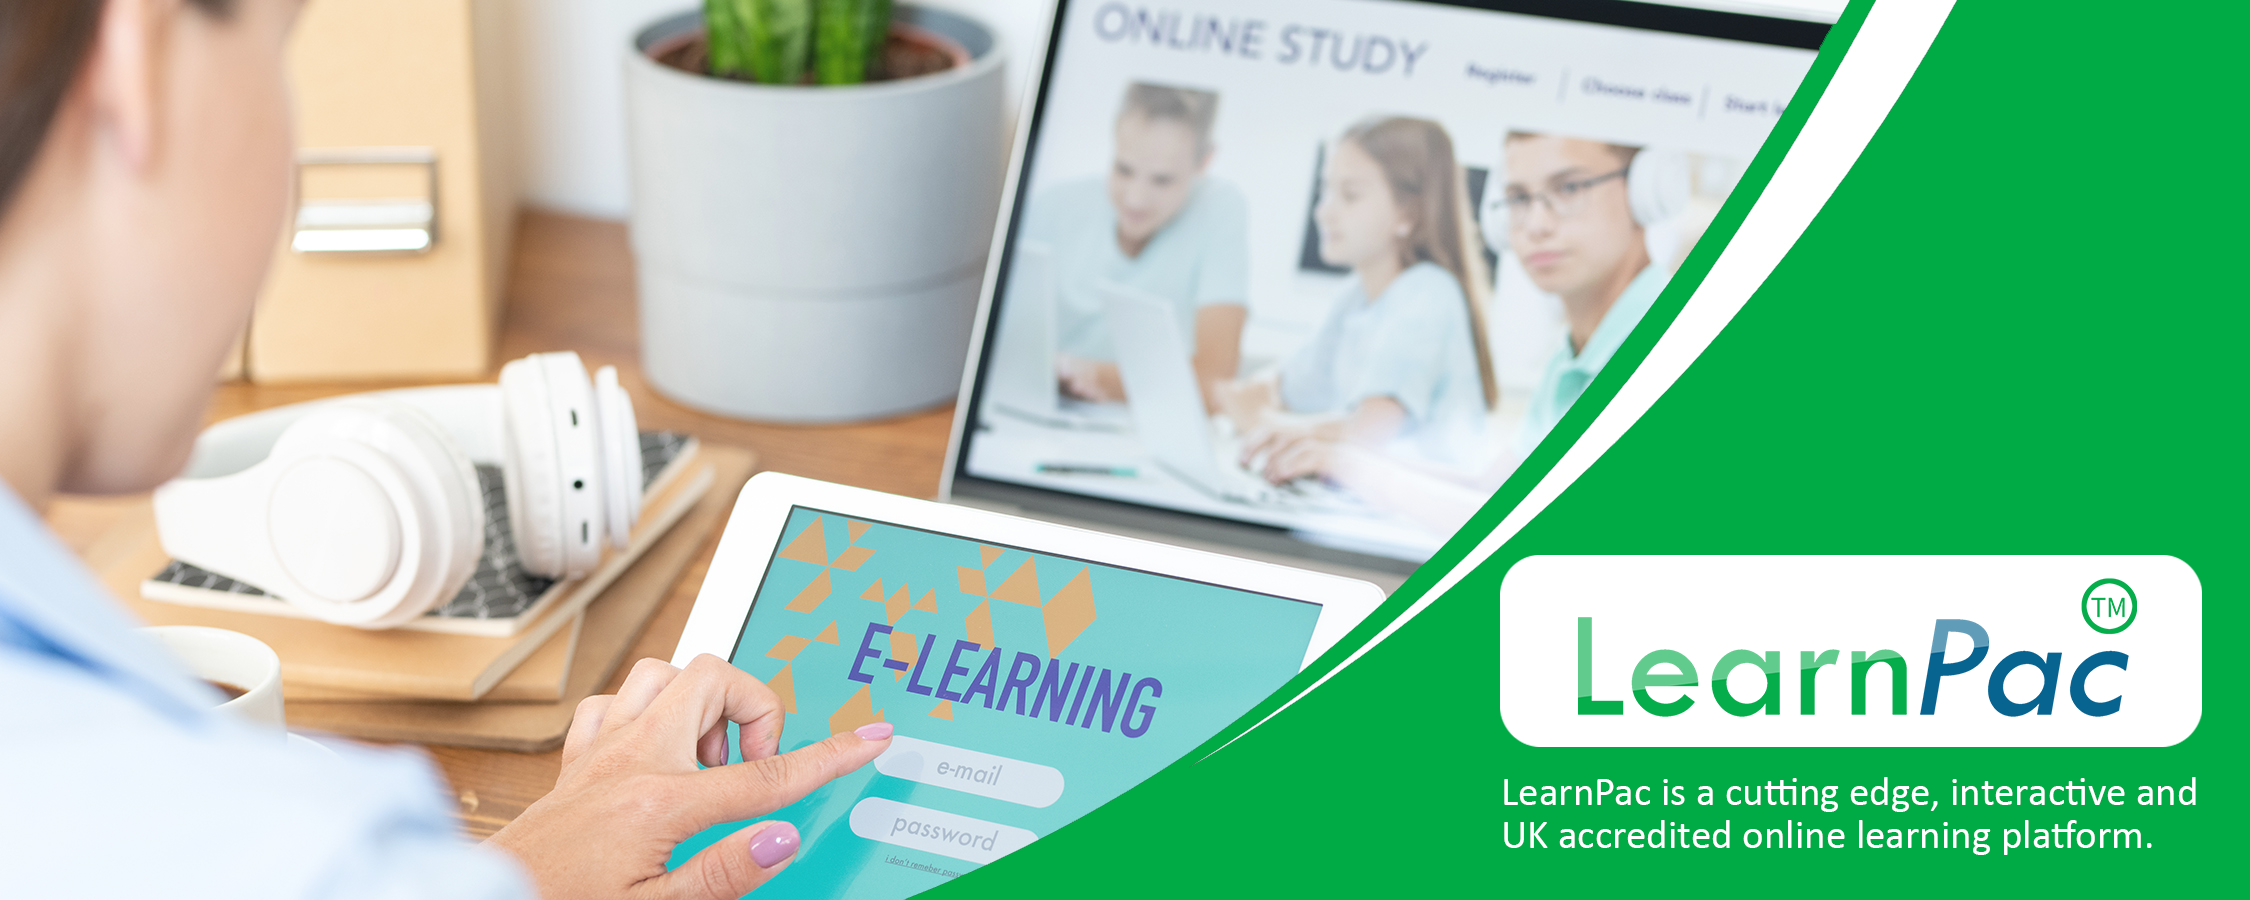 Depression Awareness - eLearning Course - CPD Certified - LearnPac Systems UK -